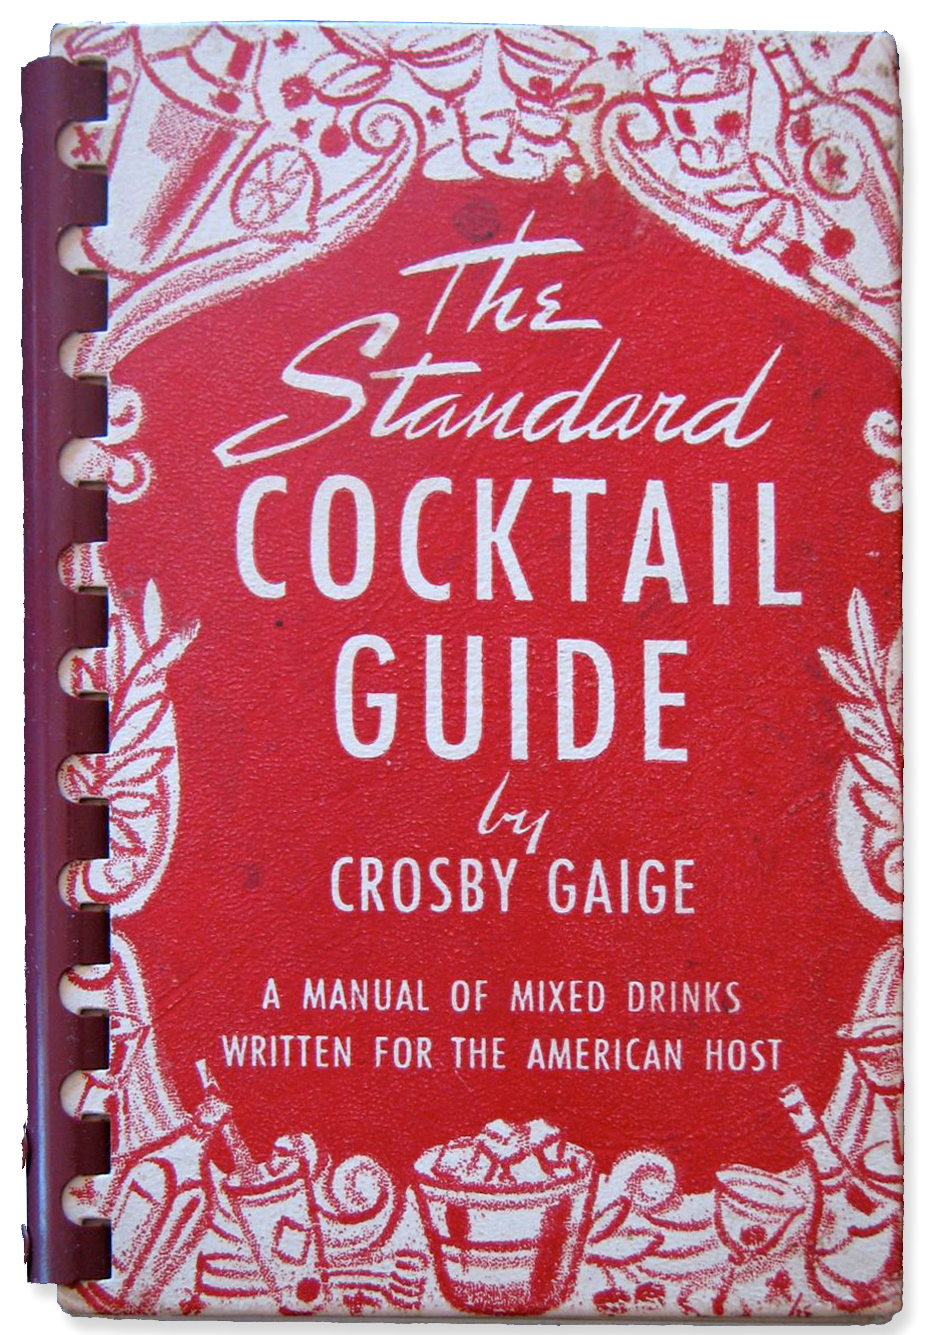 The Standard Cocktail Guide by Crosby Gaige 1944 via Crosbygaige.org